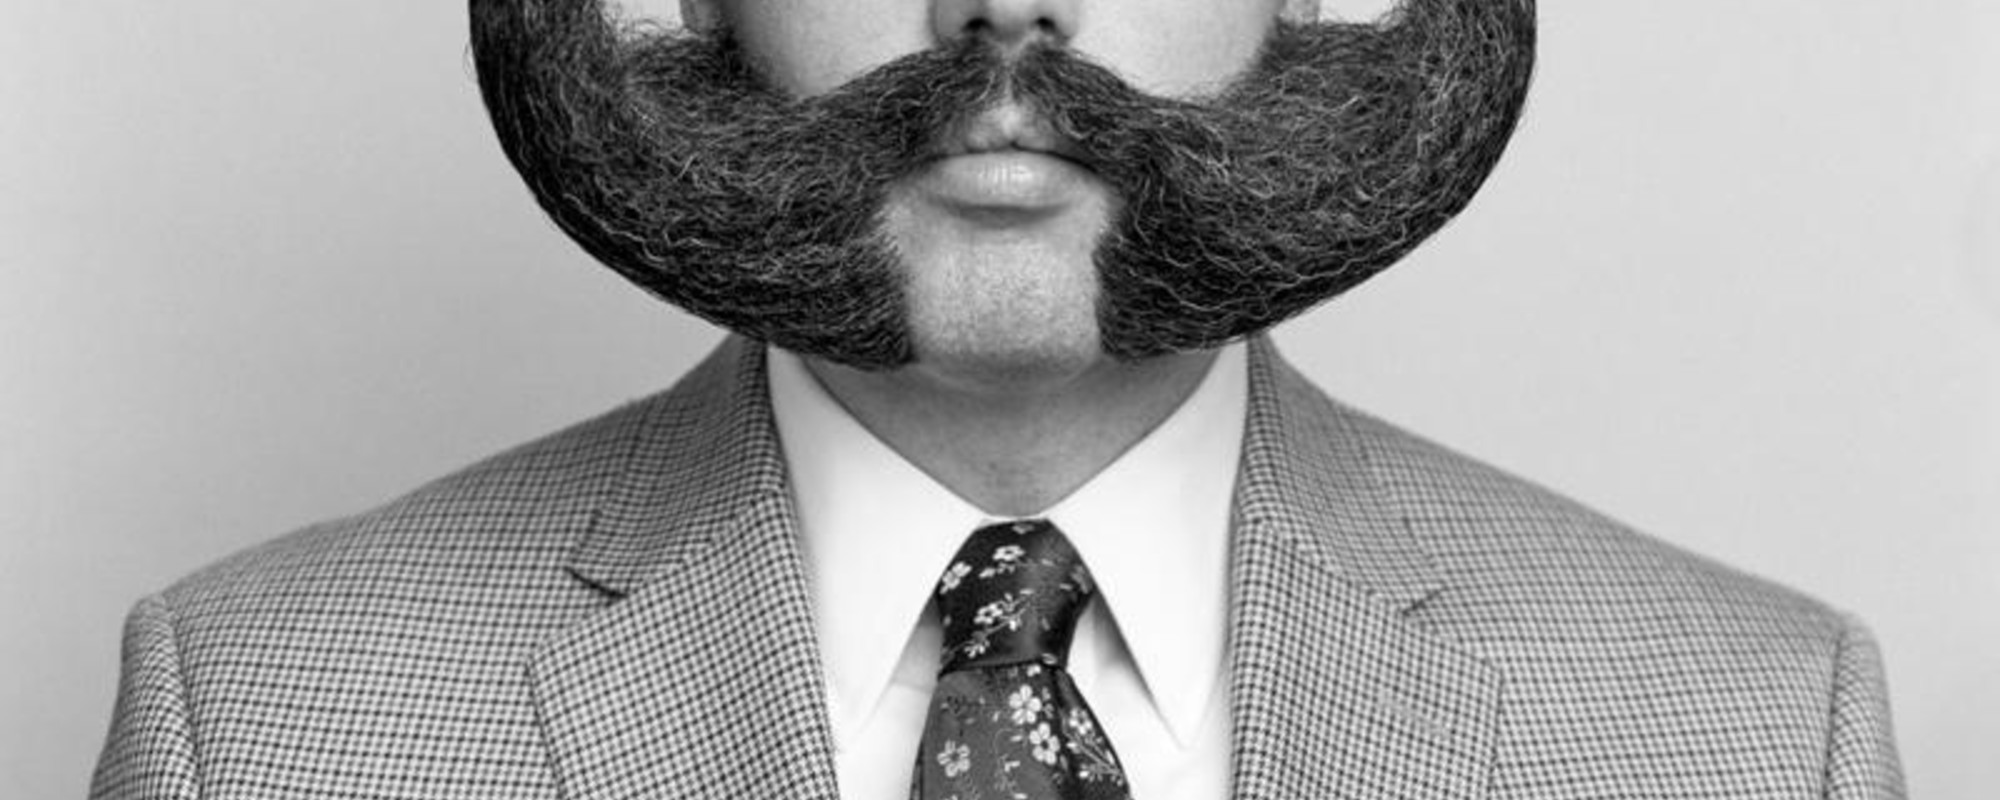 If You Can't Grow a Beard Like These, You Might as Well Shave